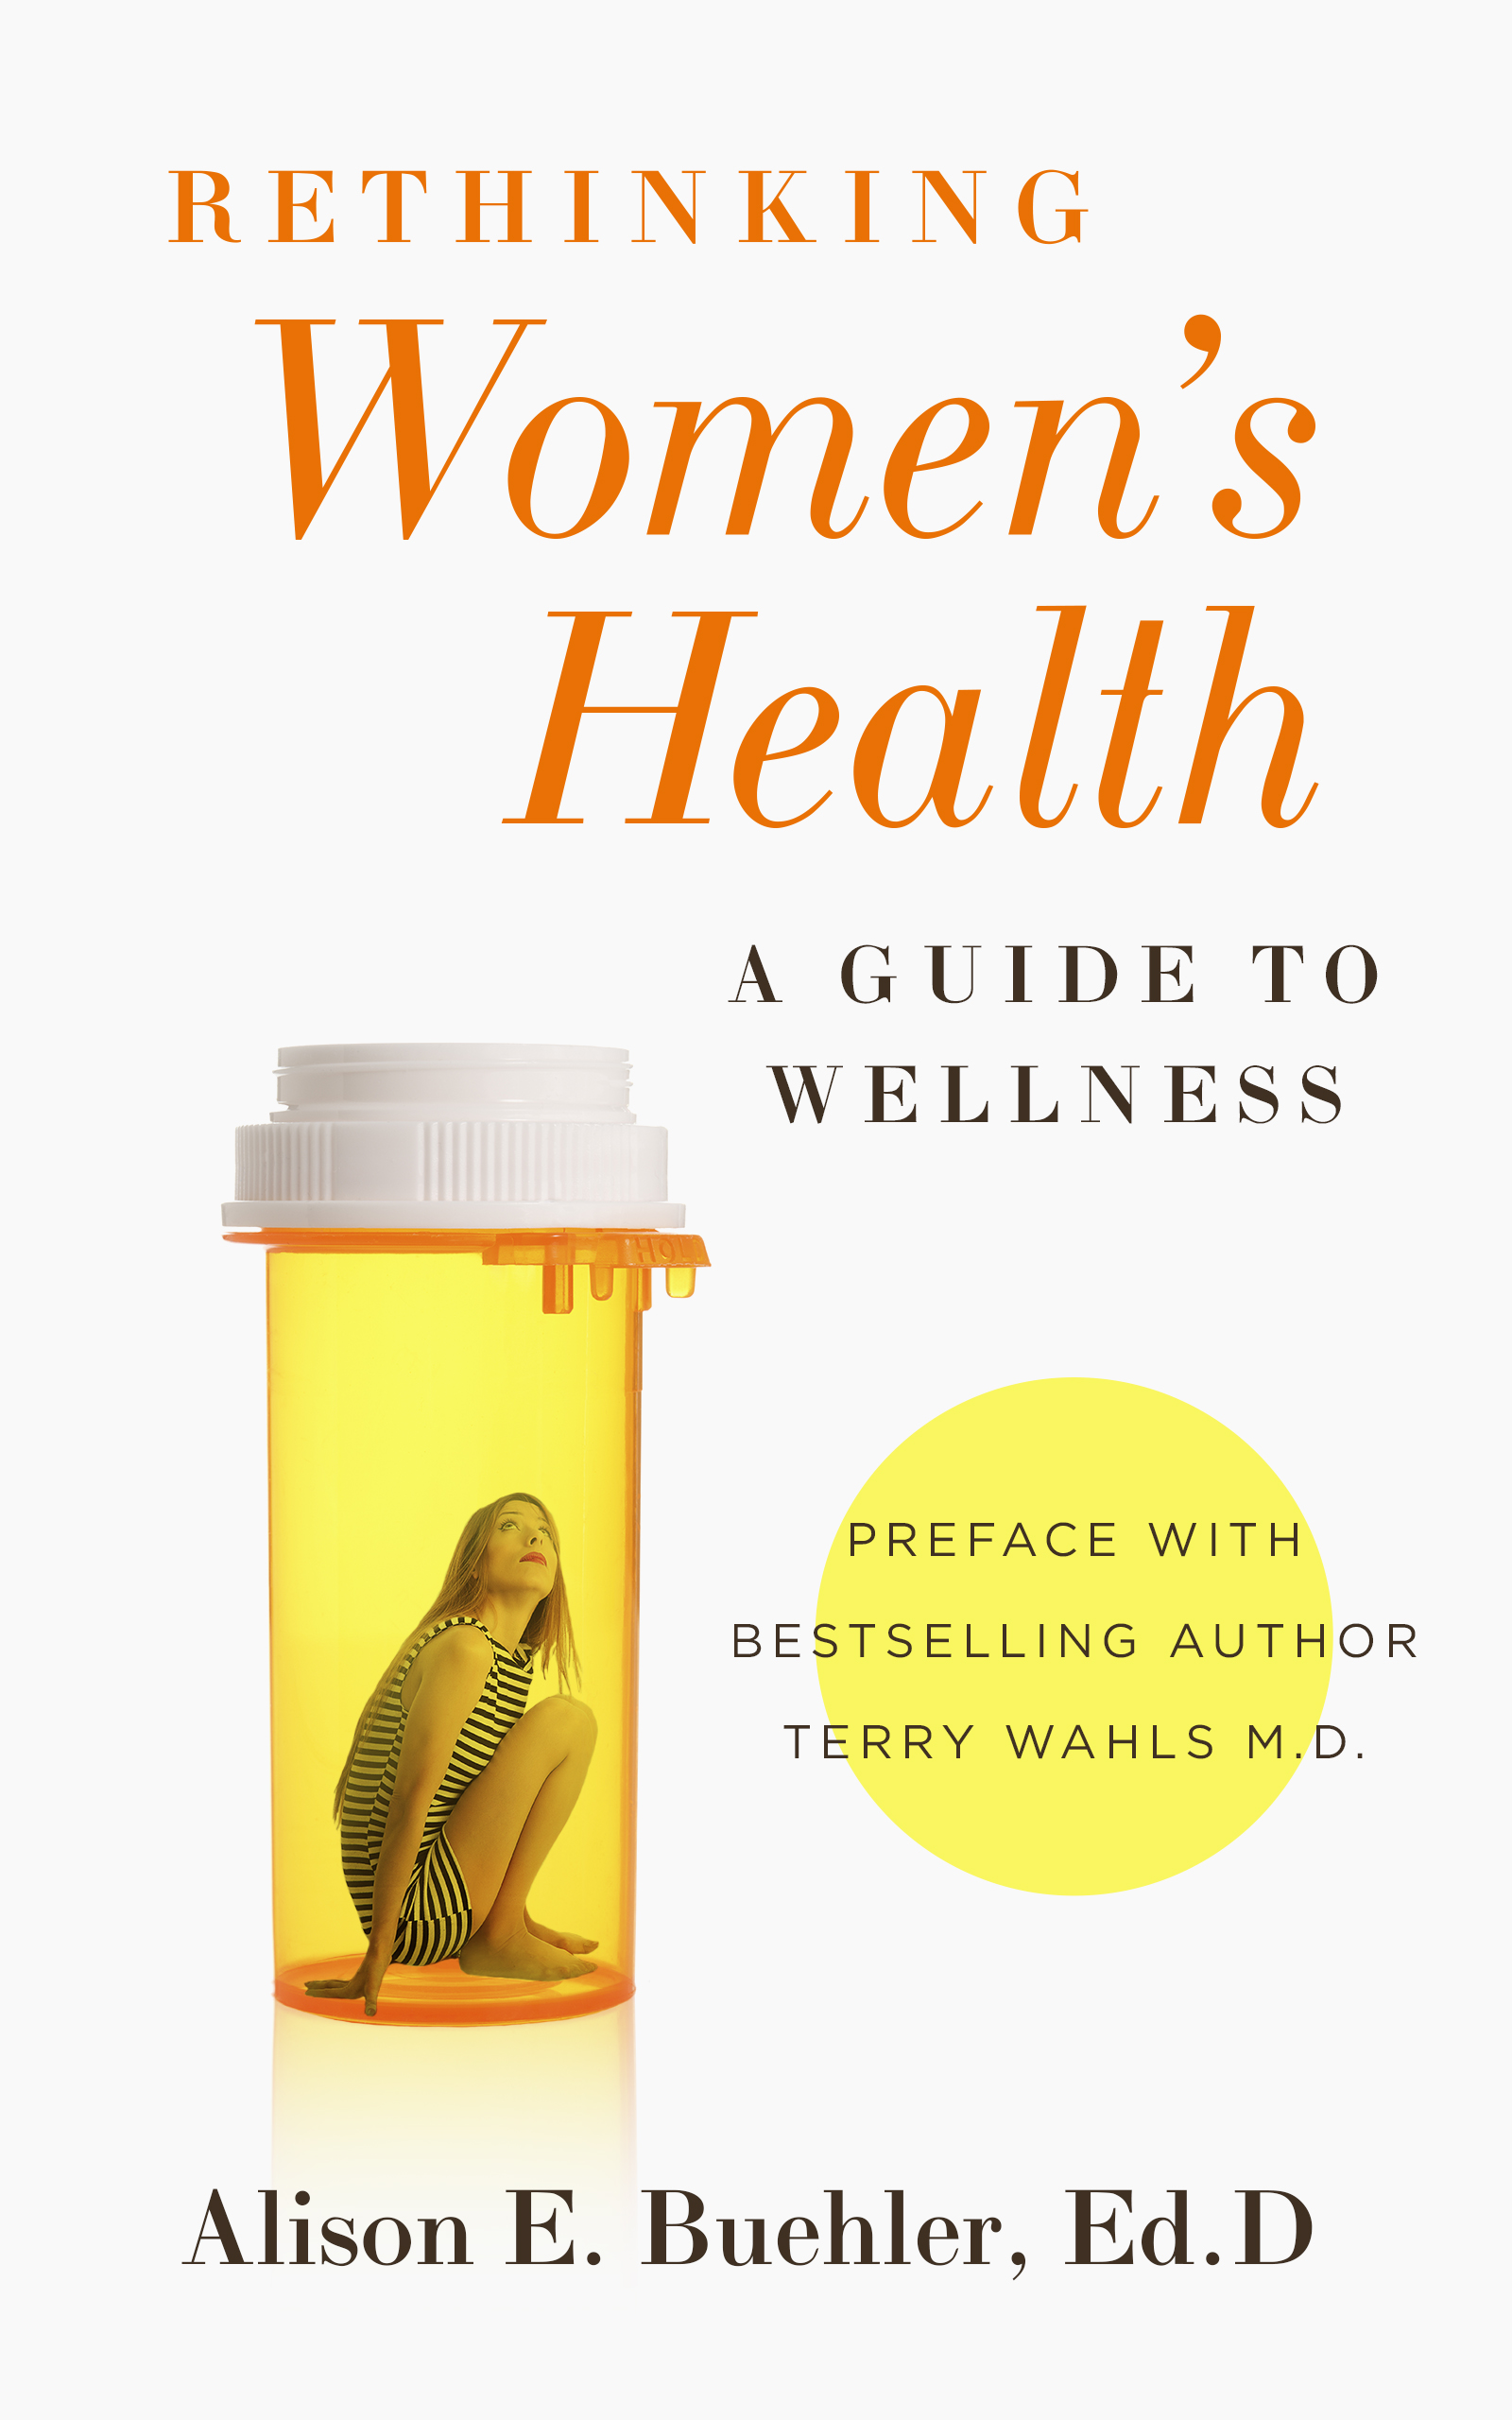 ORDER YOUR COPY AND GET STARTED ON YOUR ROAD TO HEALTH TODAY!